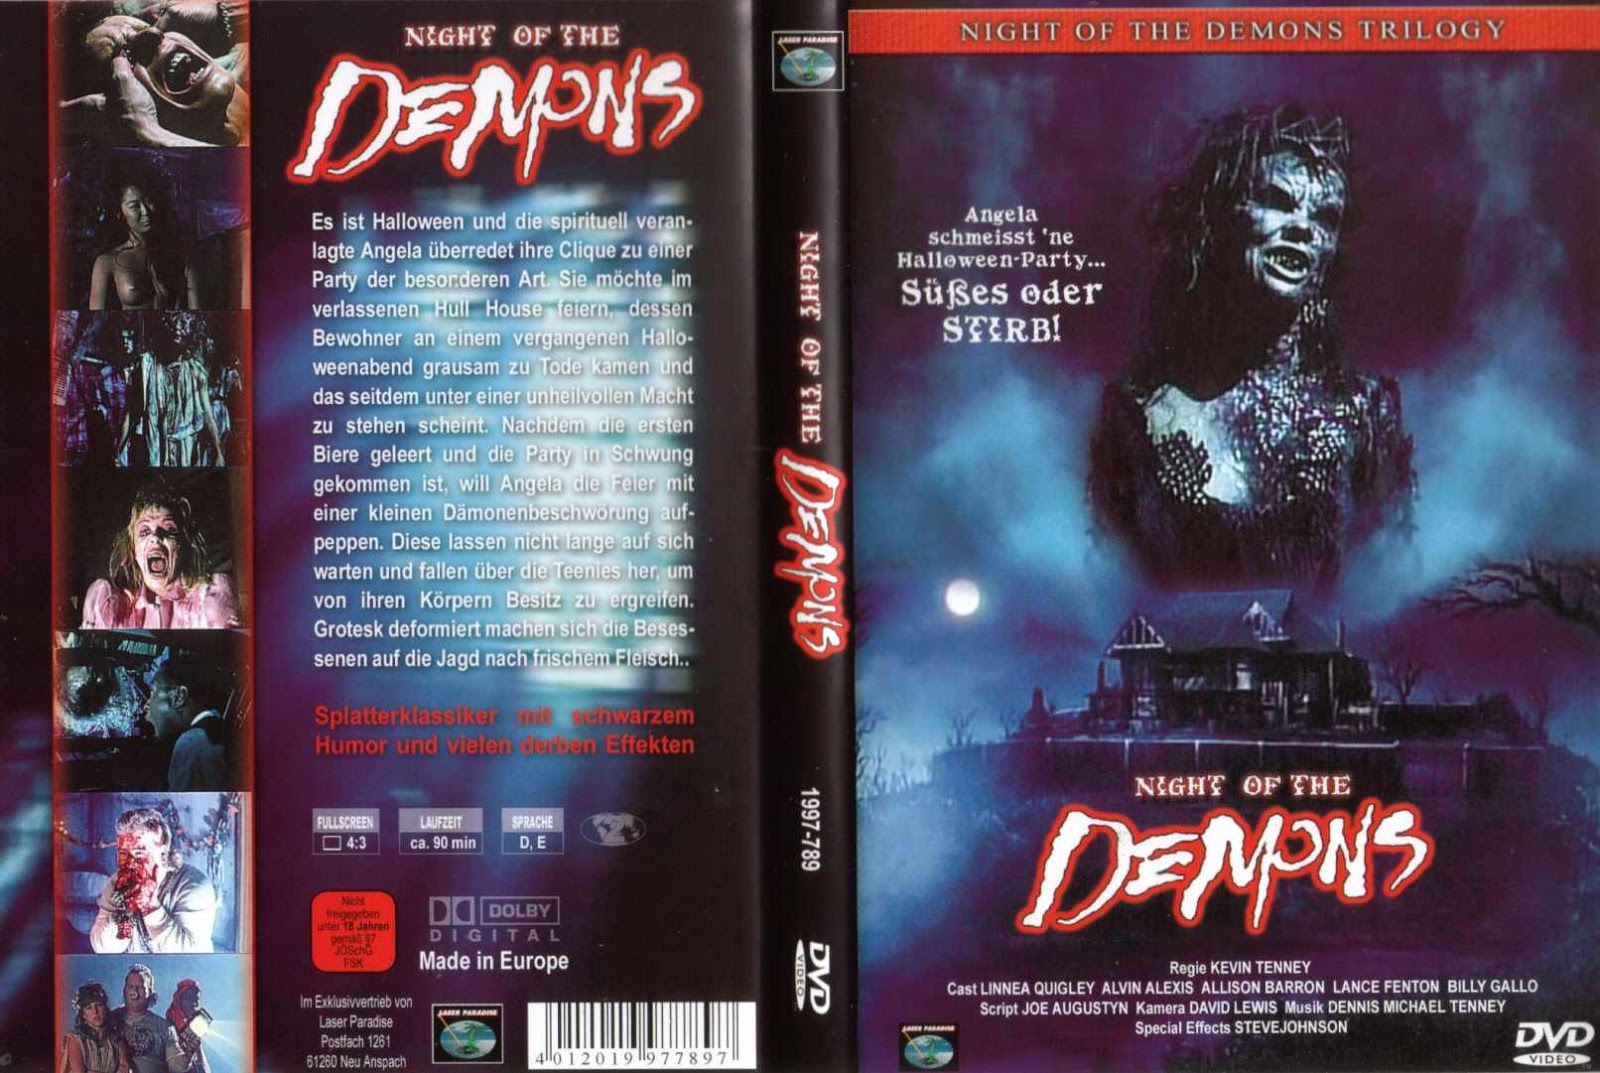 The Horrors Of Halloween: NIGHT OF THE DEMONS (1988 1997) Trilogy VHS And  DVD Covers